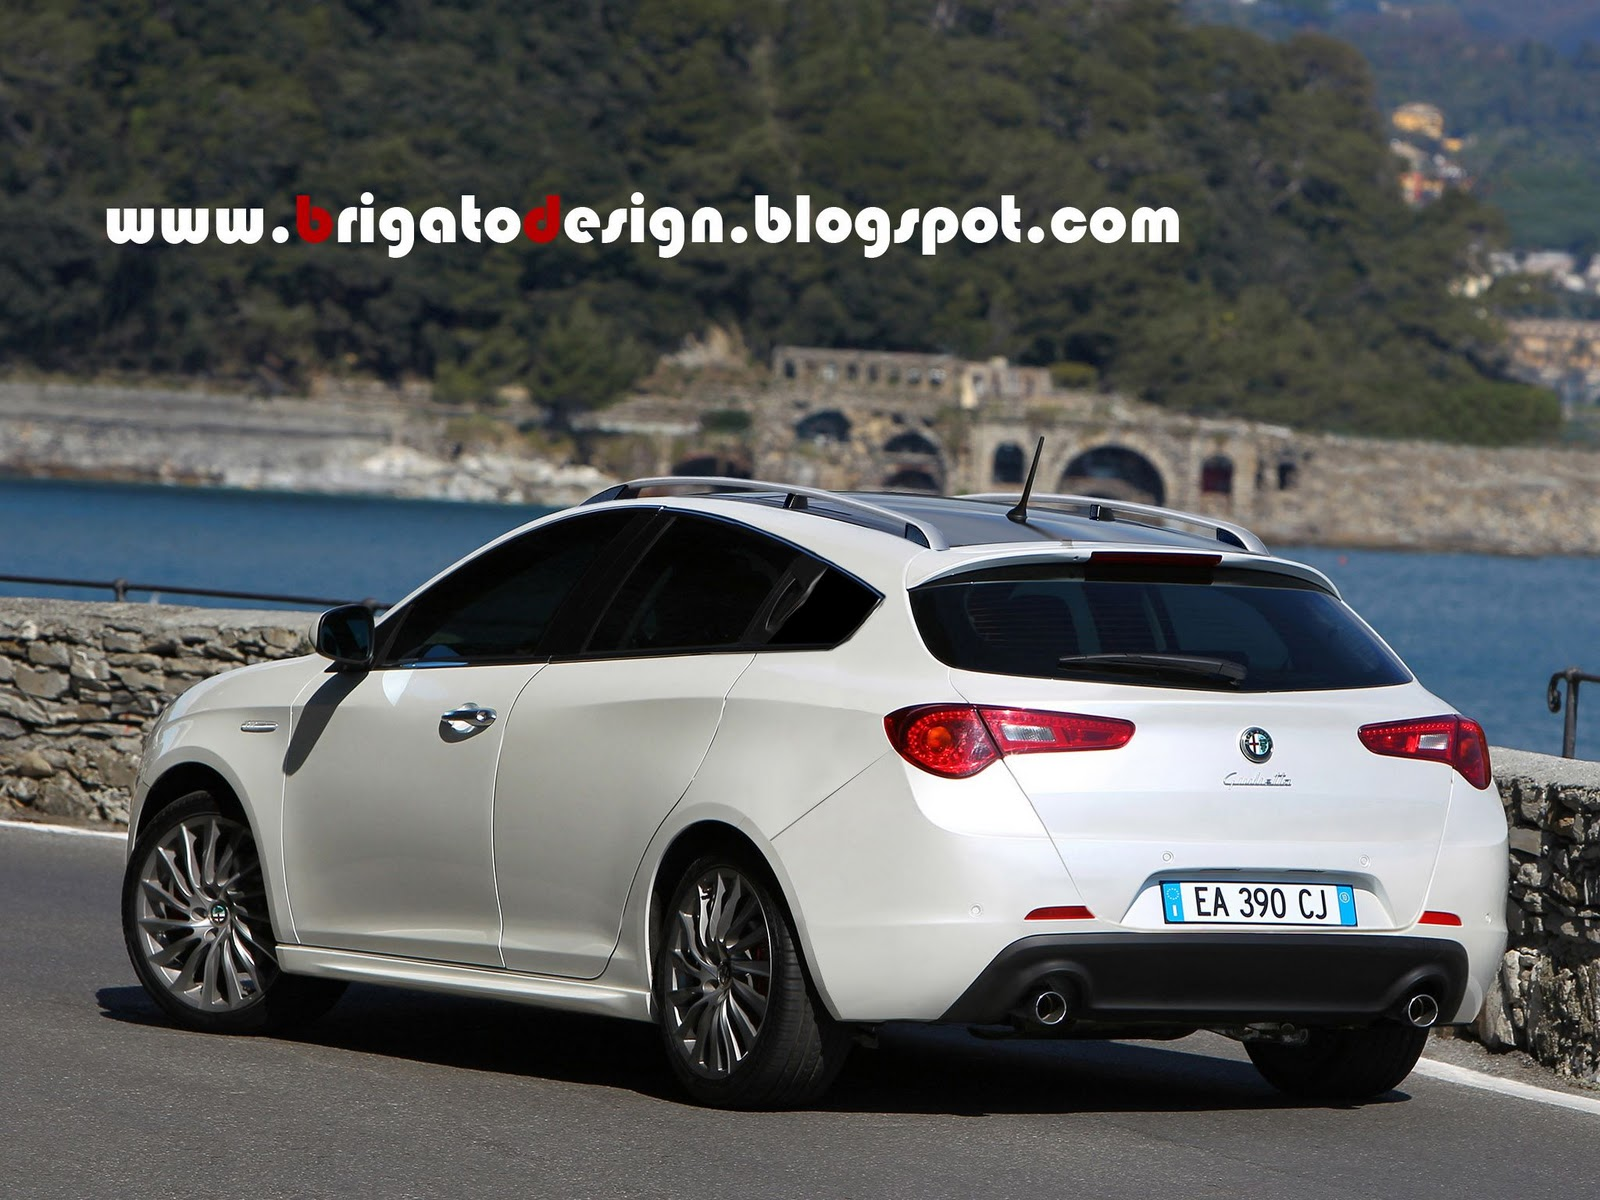 alfa romeo giulietta sportwagon technical details history. Black Bedroom Furniture Sets. Home Design Ideas